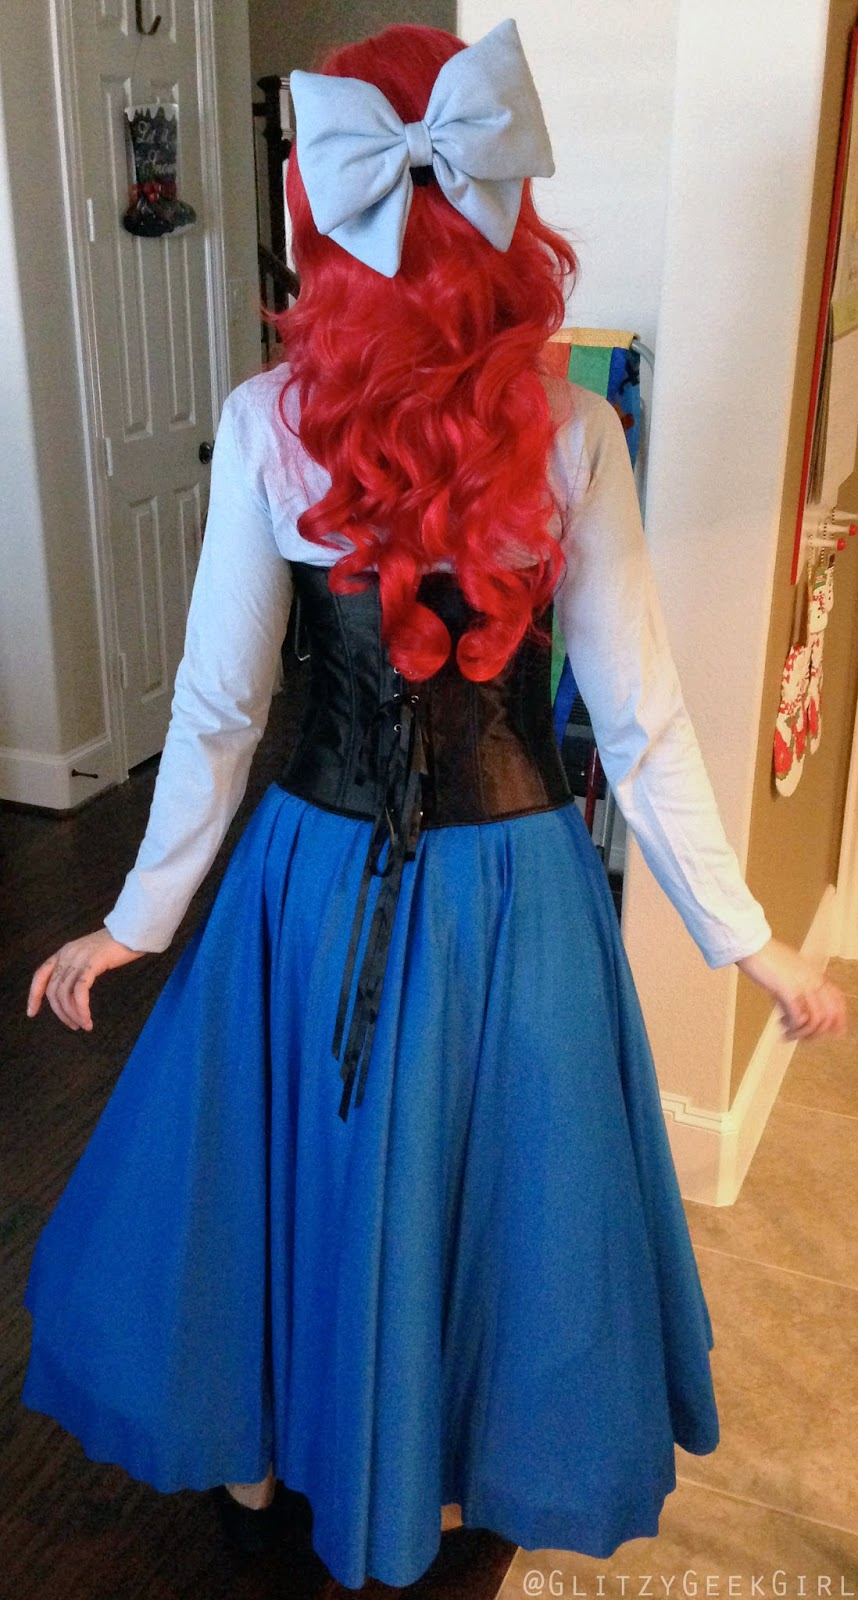 Omglitzy tutorial the little mermaid ariel cosplay i purchased my hair bow from angivipers etsy store this is the puffy version it attaches with a clip and was shipped very quickly solutioingenieria Choice Image